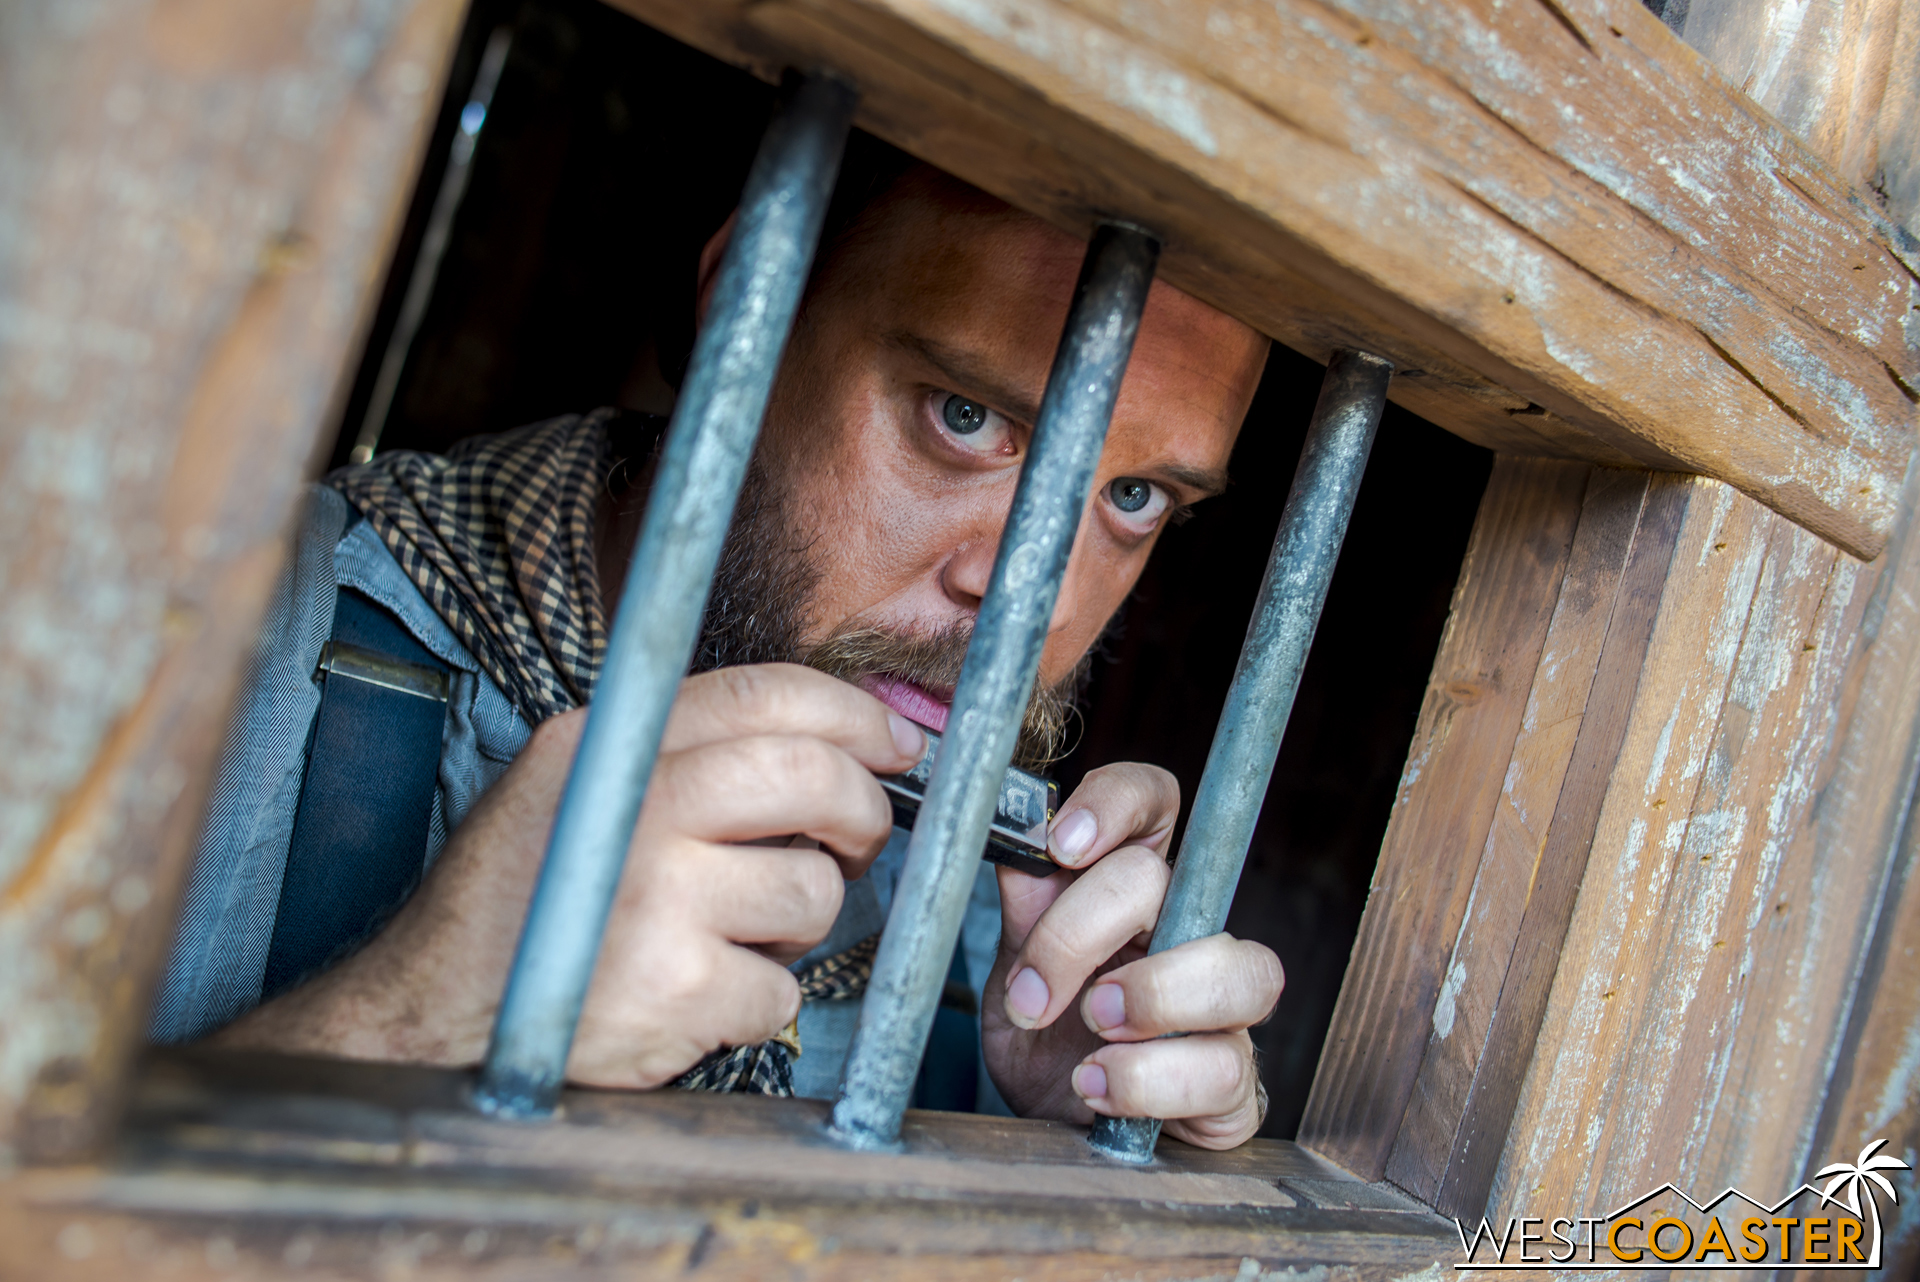 In the afternoon, guests will find Tiny Mayfield captured inside, prisoner after confessing to be solely responsible for the robberies of the Assayer's Office and the Bank earlier in the day.